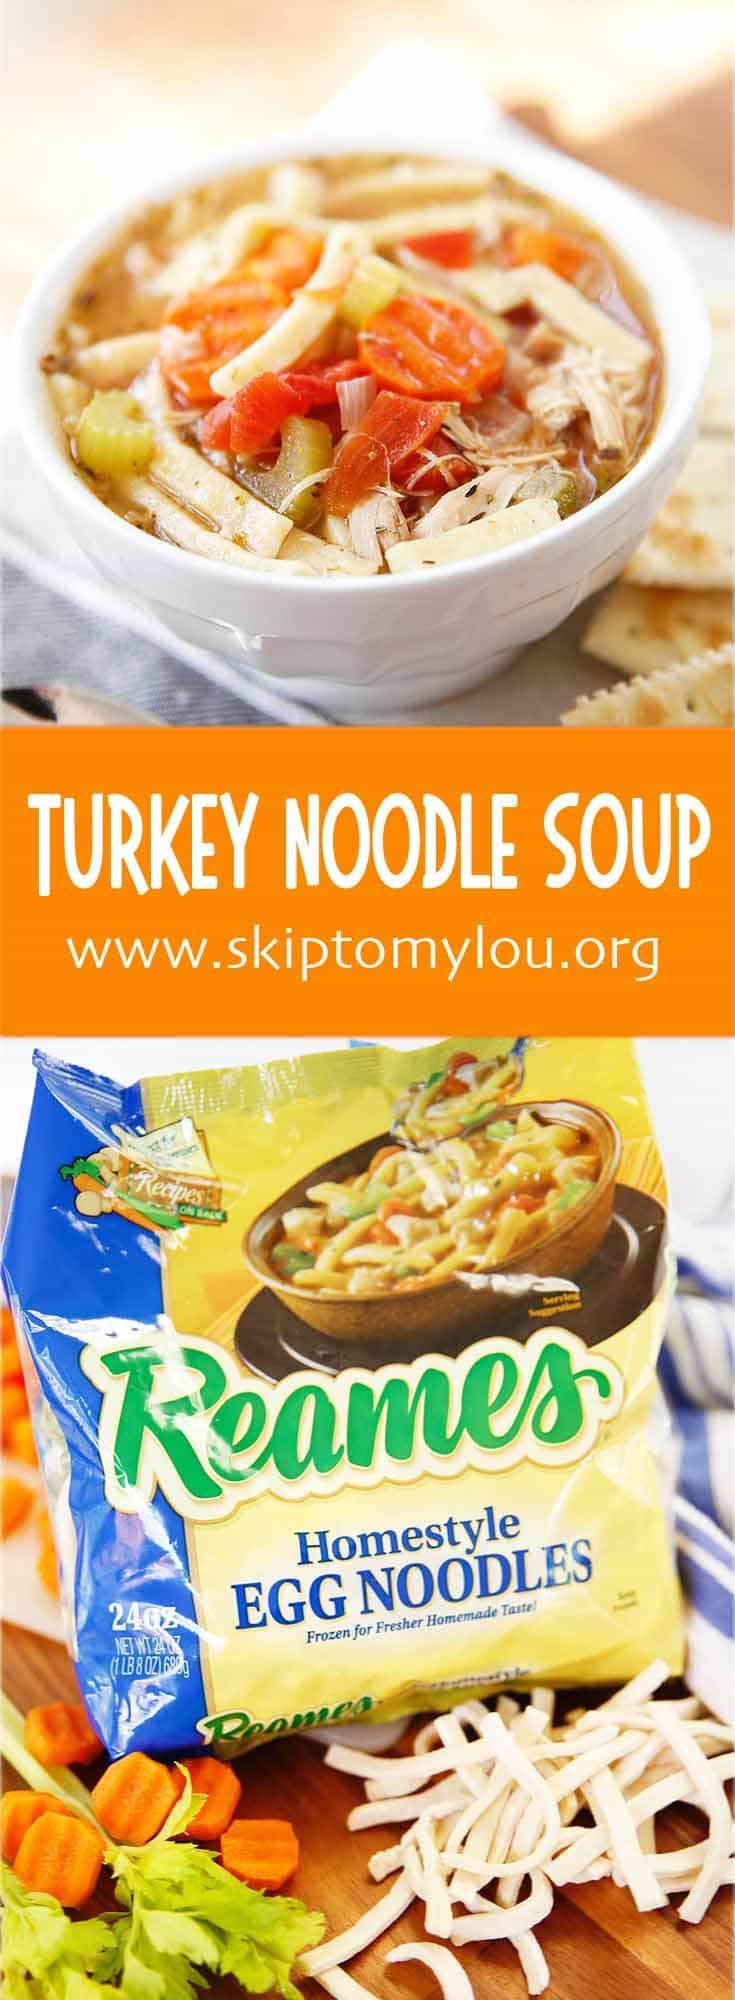 How to make turkey noodle soup. An recipe from scratch with easy store bought noodles. @WFDRecipe  Perfect for cold season and leftover turkey! #recipes #thanksgiving #soup